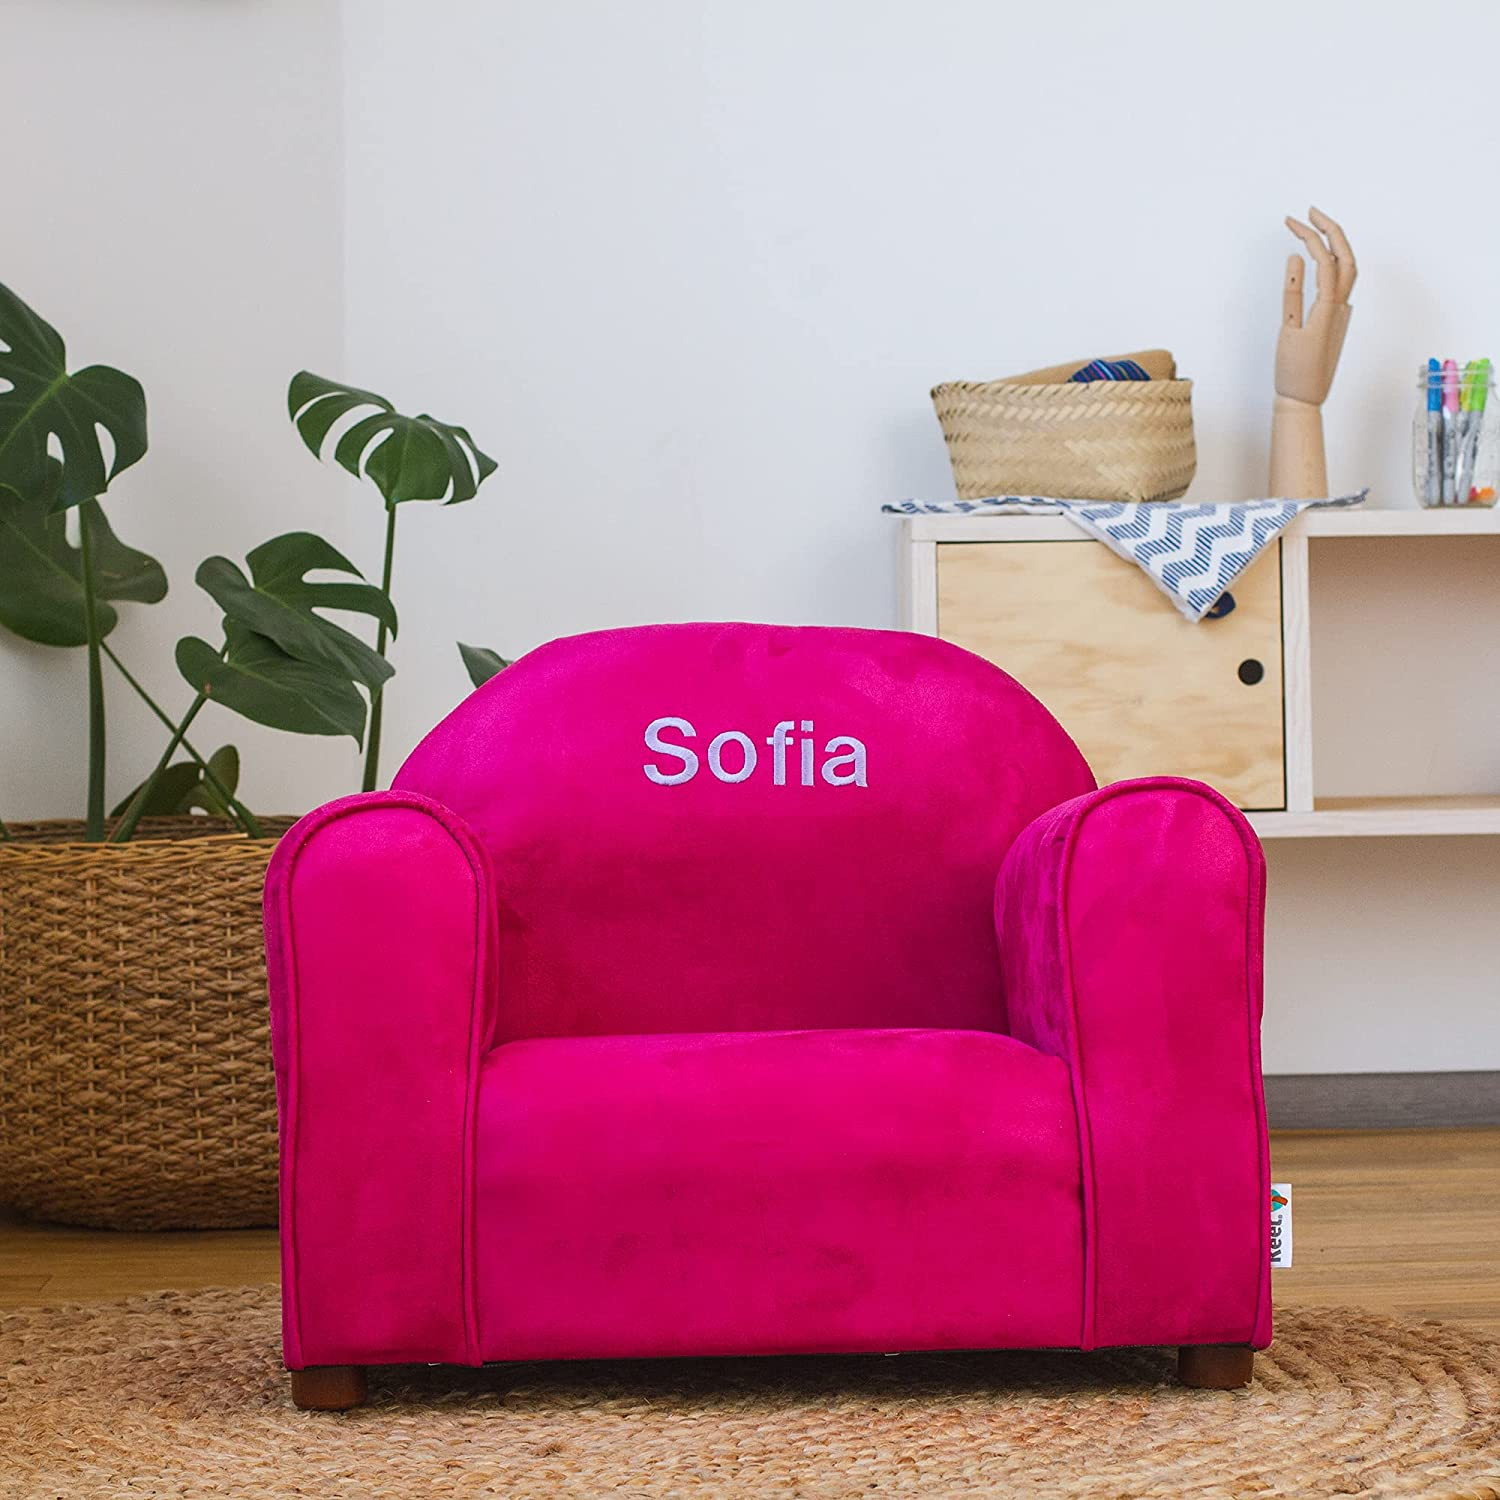 Inventory cleanup Animer and price revision selling sale Upholstered Personalized Kids Chair Pink Suede Hot Microfiber